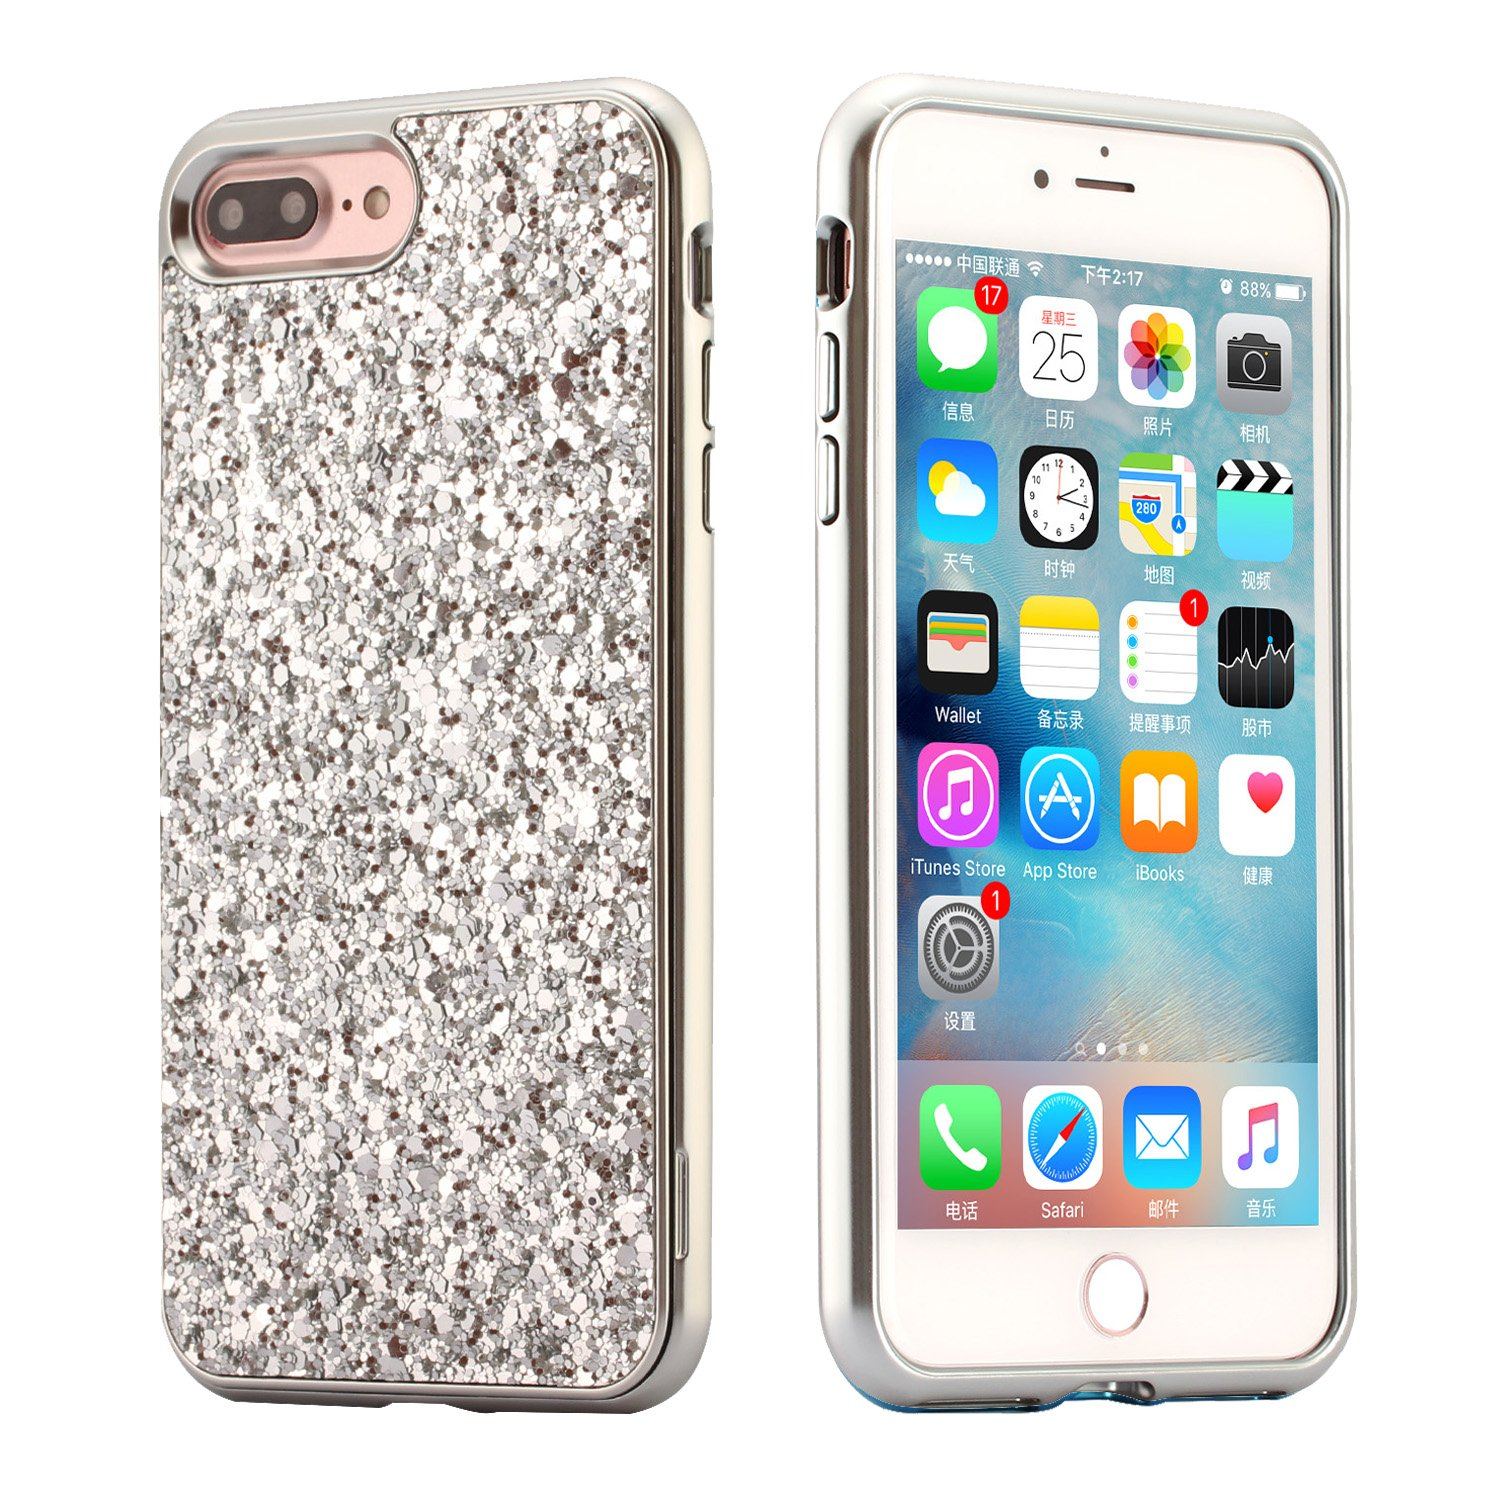 Case for iPhone 8 Plus,iPhone 7 Plus Case Glitter,BtDuck Bling Metal Case Shockproof Phone Protector Shiny Fashion Style Case Silver Clear View Cover Cute Hard Case Rose Gold Anti-slip Holster Upscale Skin Slim Fit Phone Protector Clear Case Pink for Girl